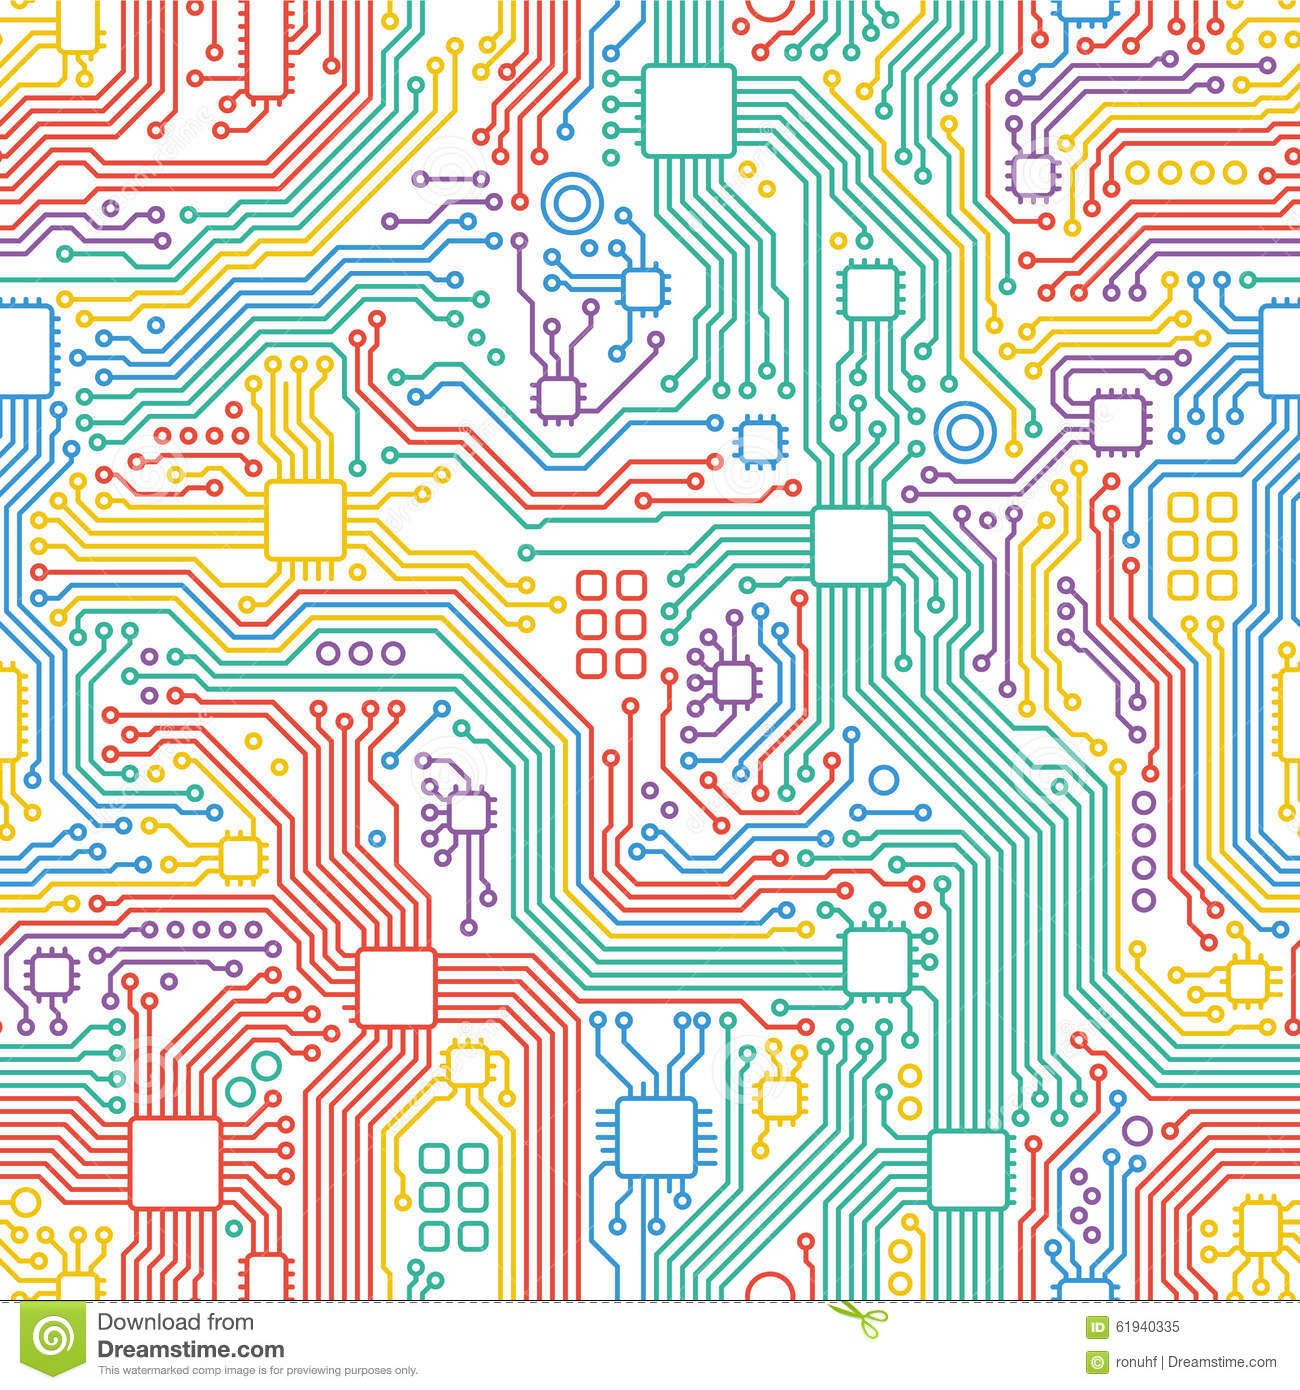 Technology Abstract Motherboard Illustration Background Graphicdesign Technology Design Graphic Technology Wallpaper Red Art Painting